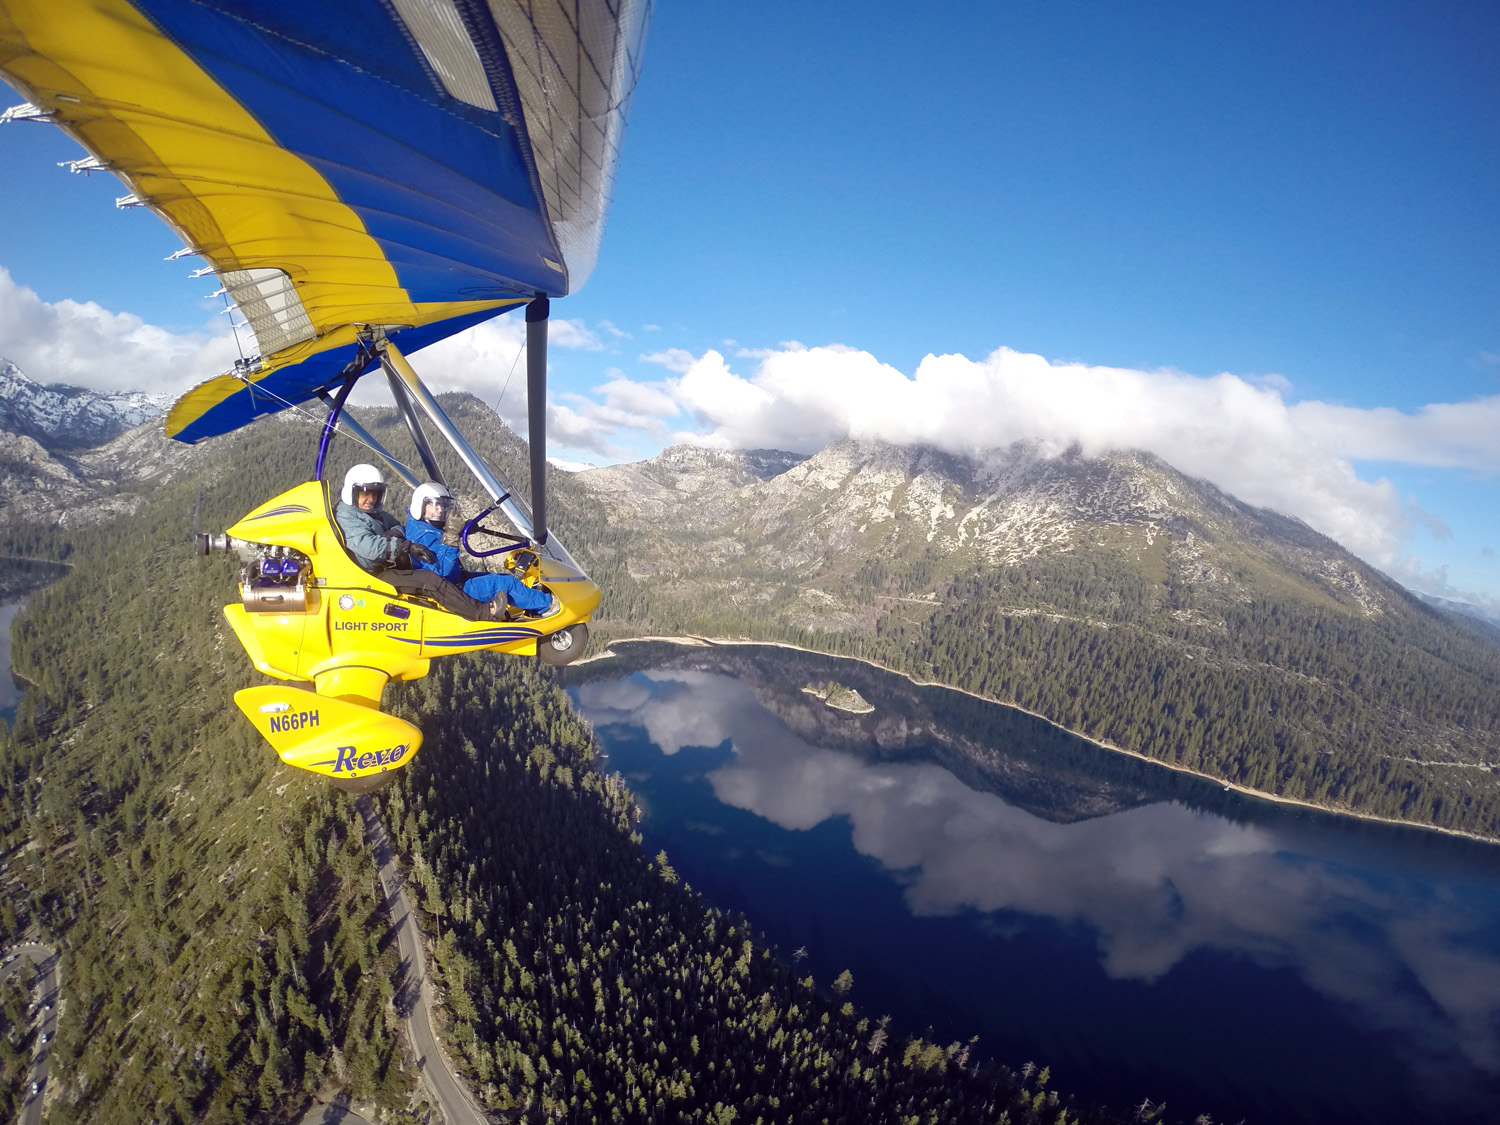 Reflection of clouds in Emerald Bay, view from powered hang glider.